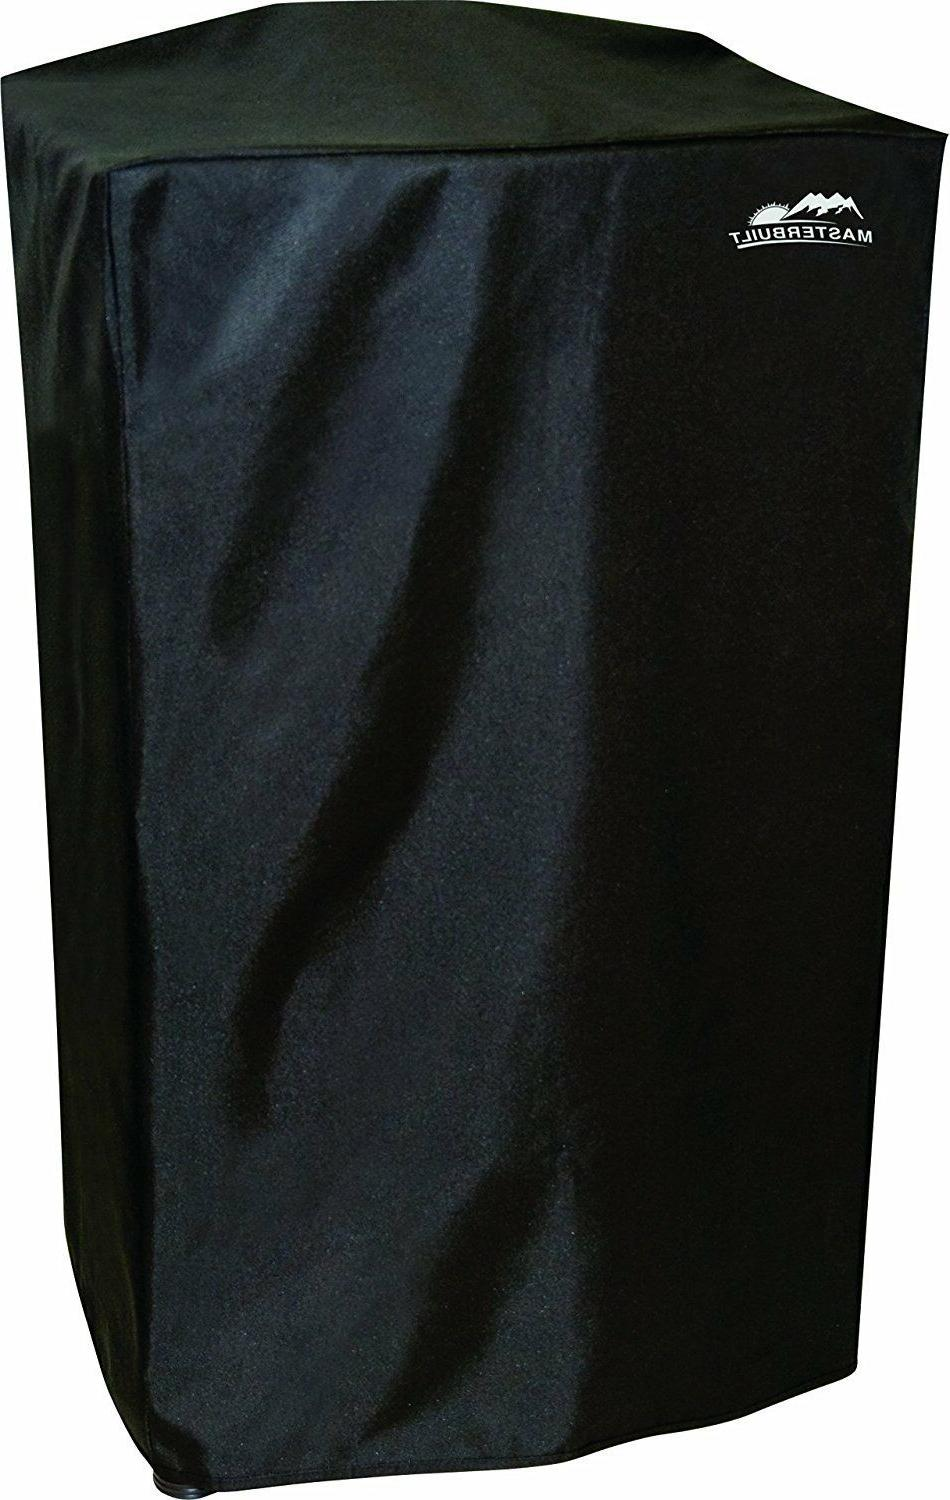 40 inch electric smoker cover